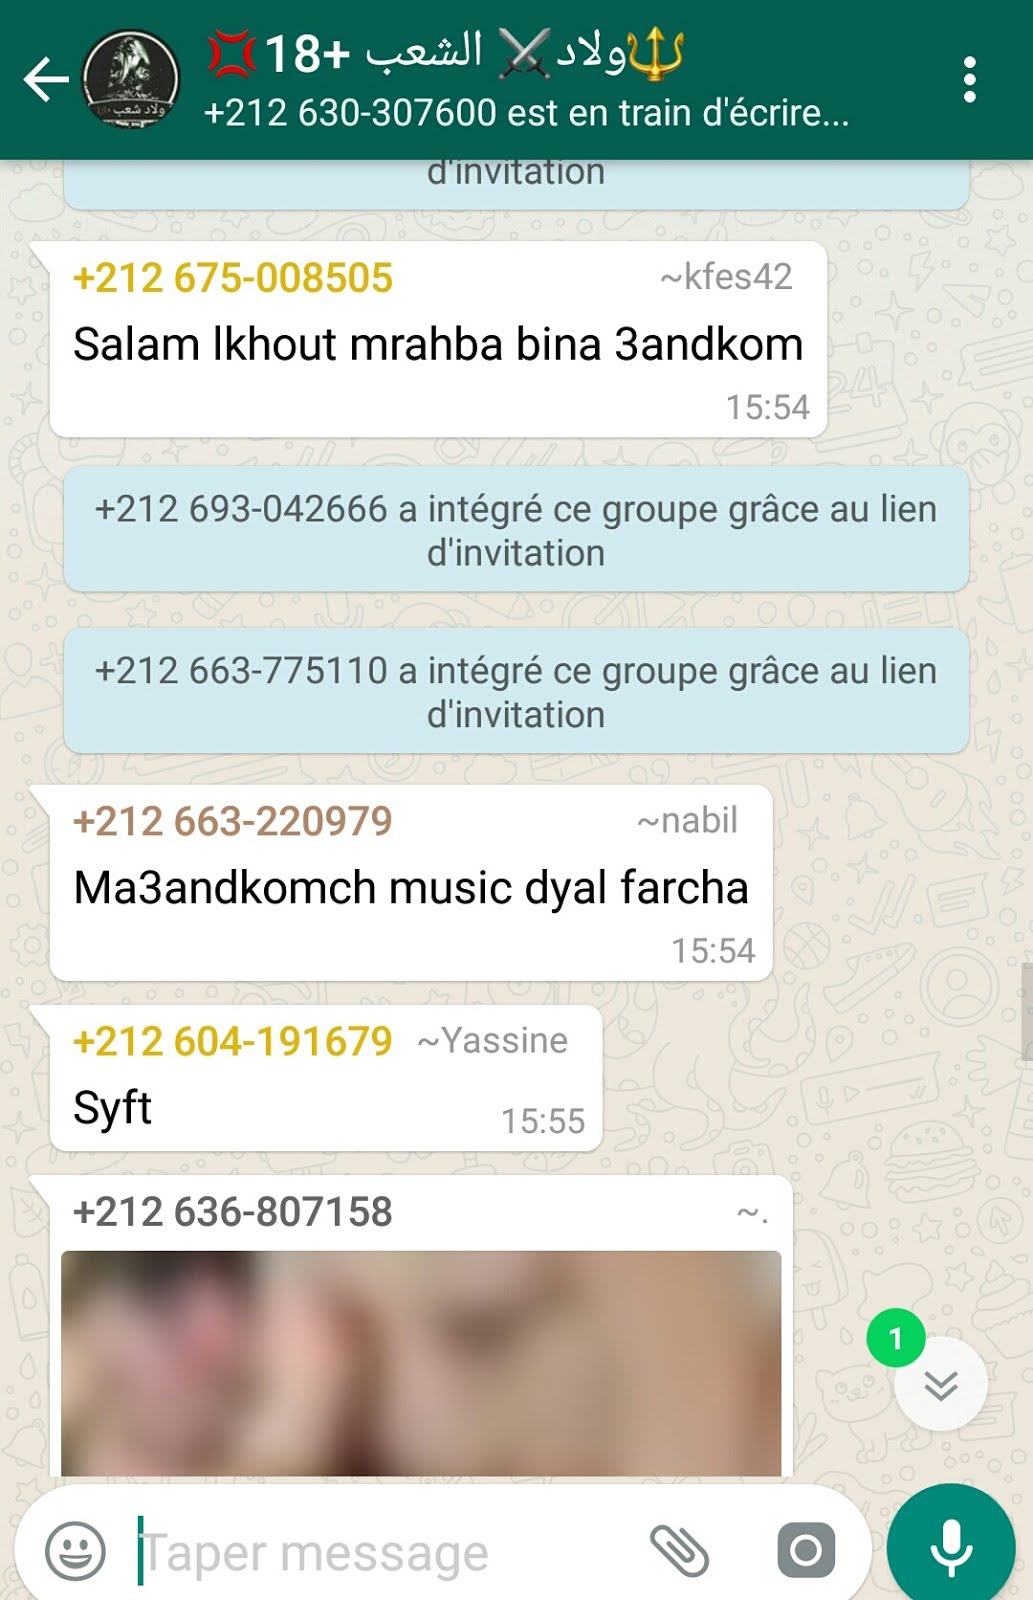 Whatsapp 18 group number